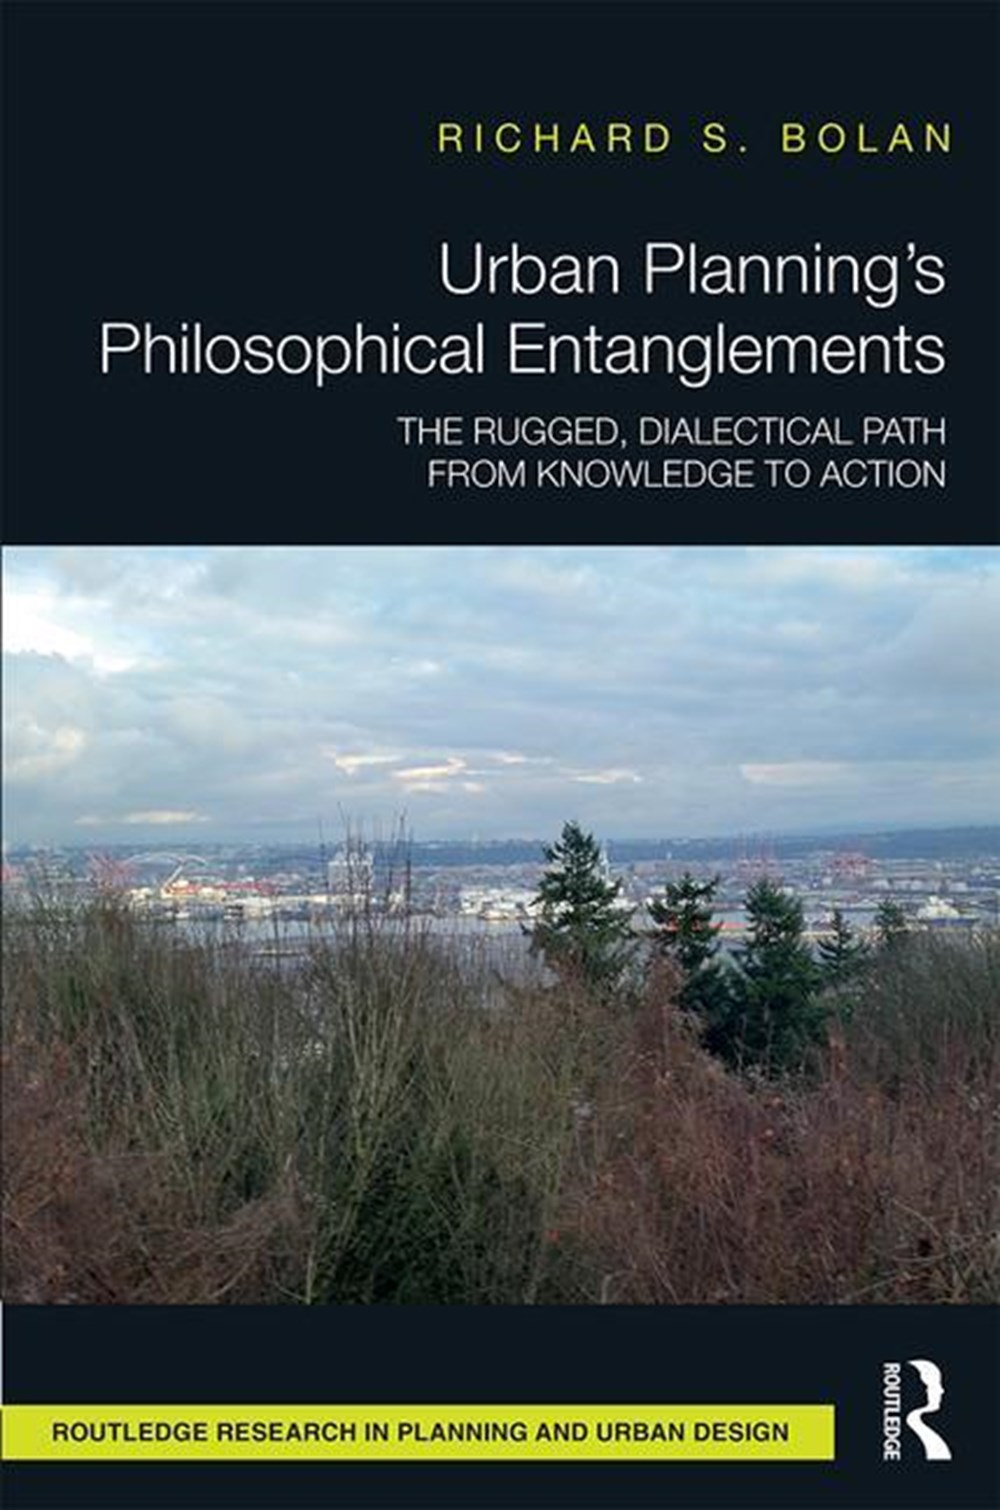 Urban Planning's Philosophical Entanglements The Rugged, Dialectical Path from Knowledge to Action